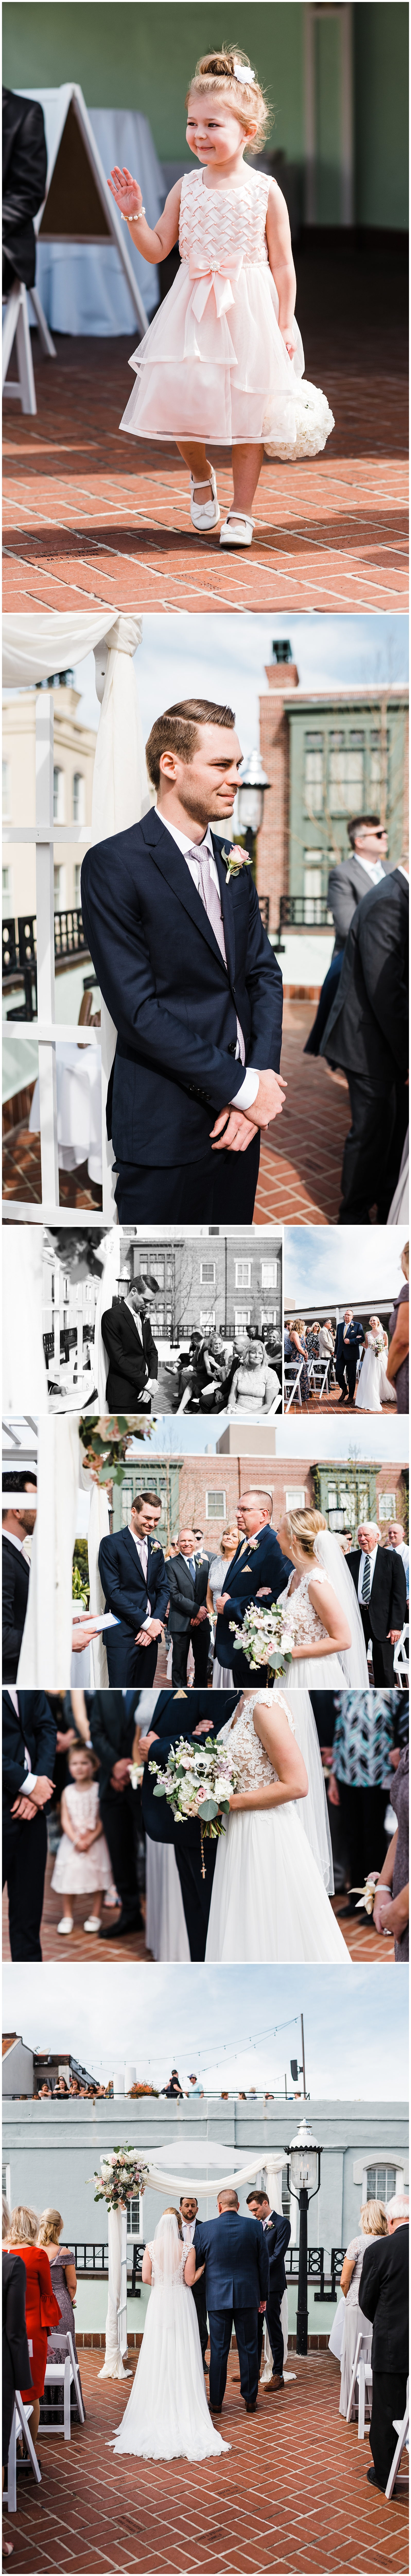 Easterday Creative | Adventurous wedding photographer and storyteller | Historic Charleston Wedding